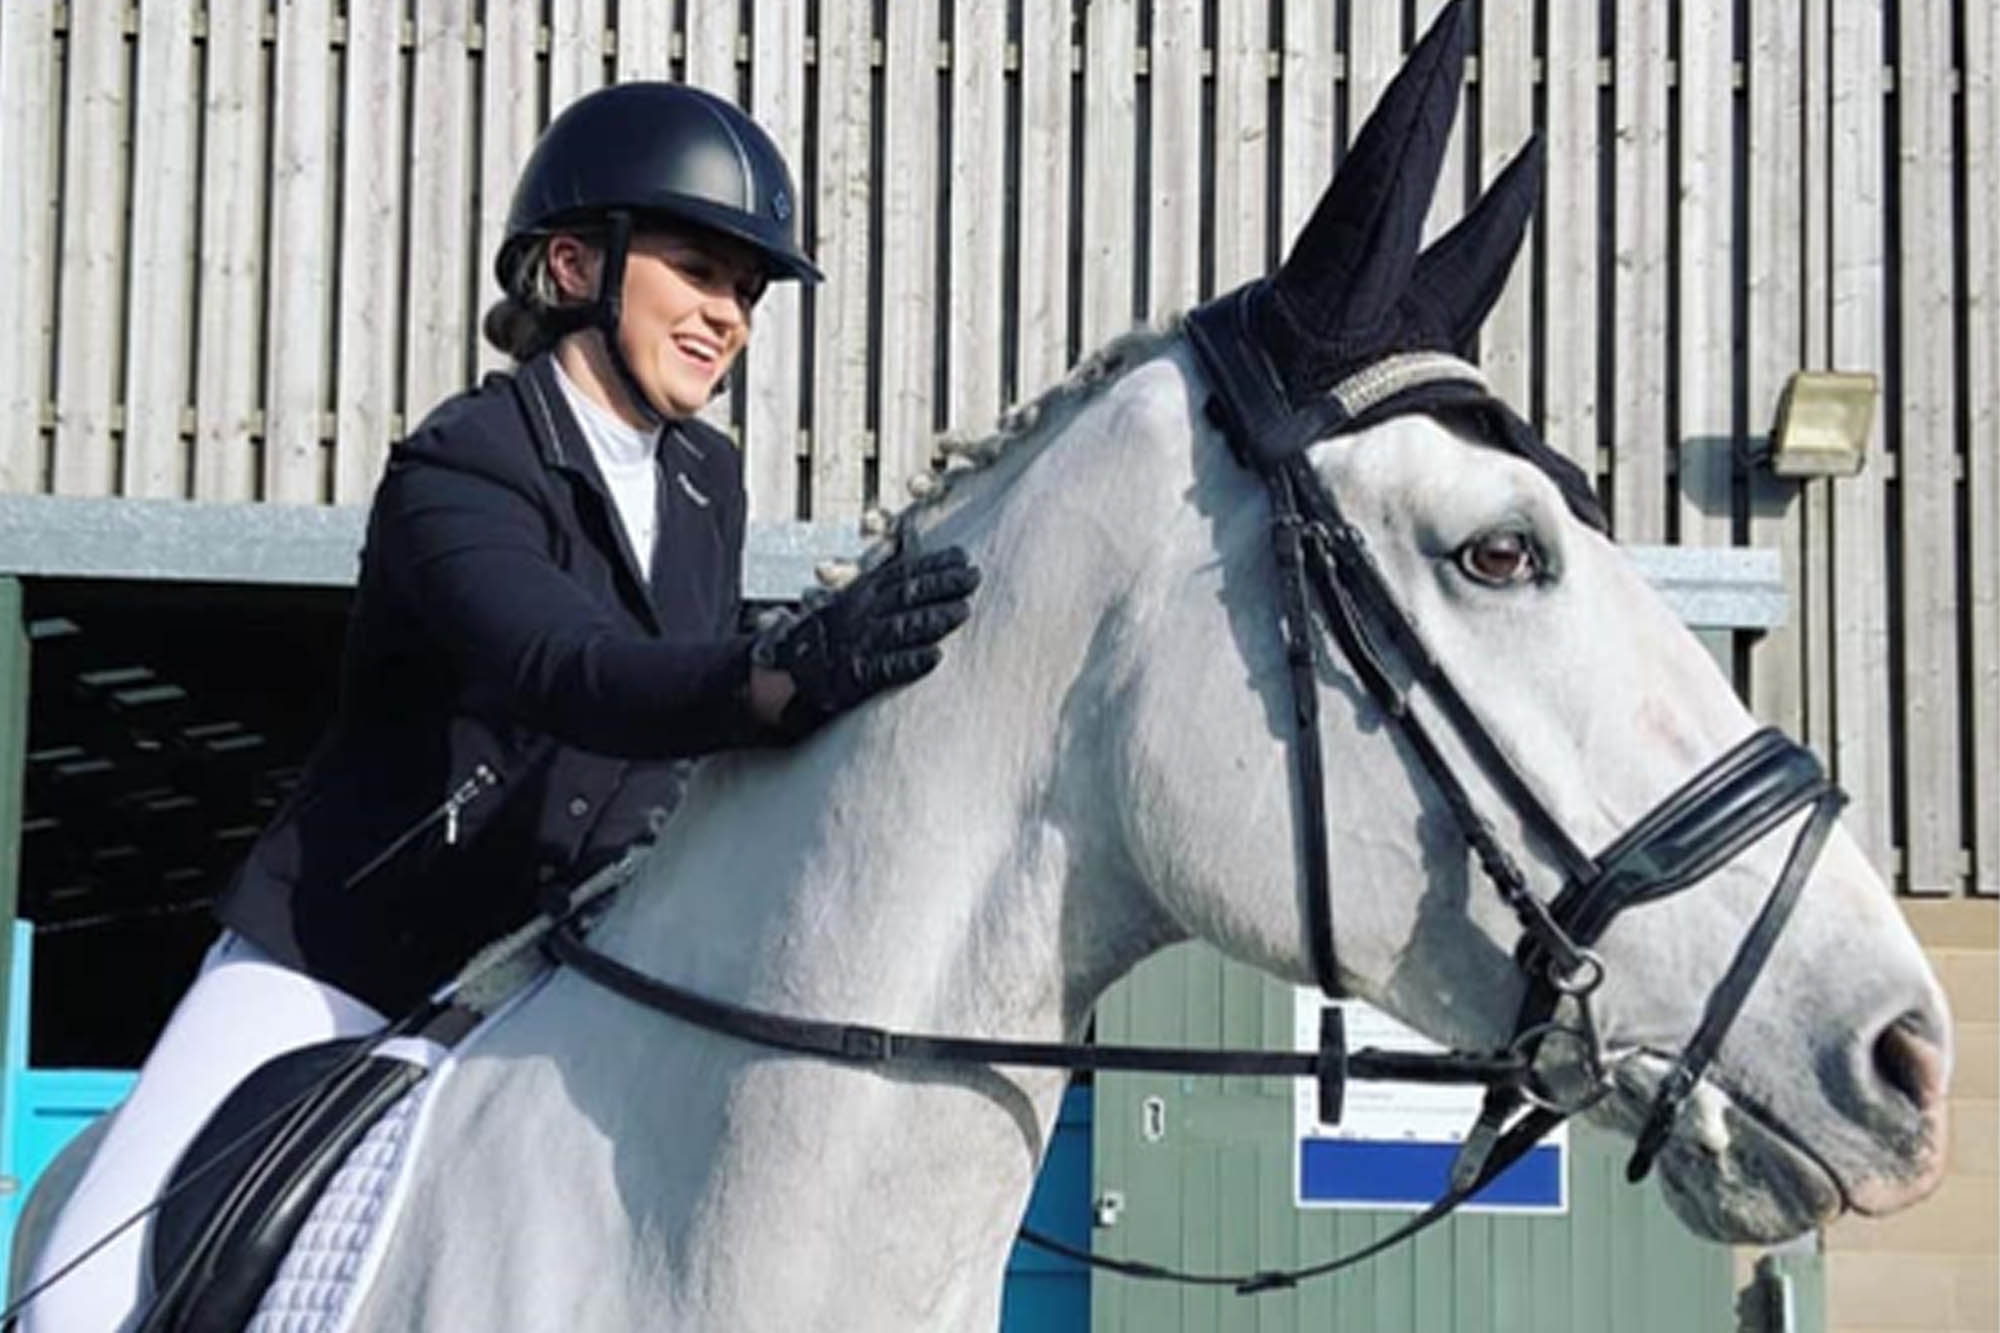 Cancelled: Unaffiliated dressage